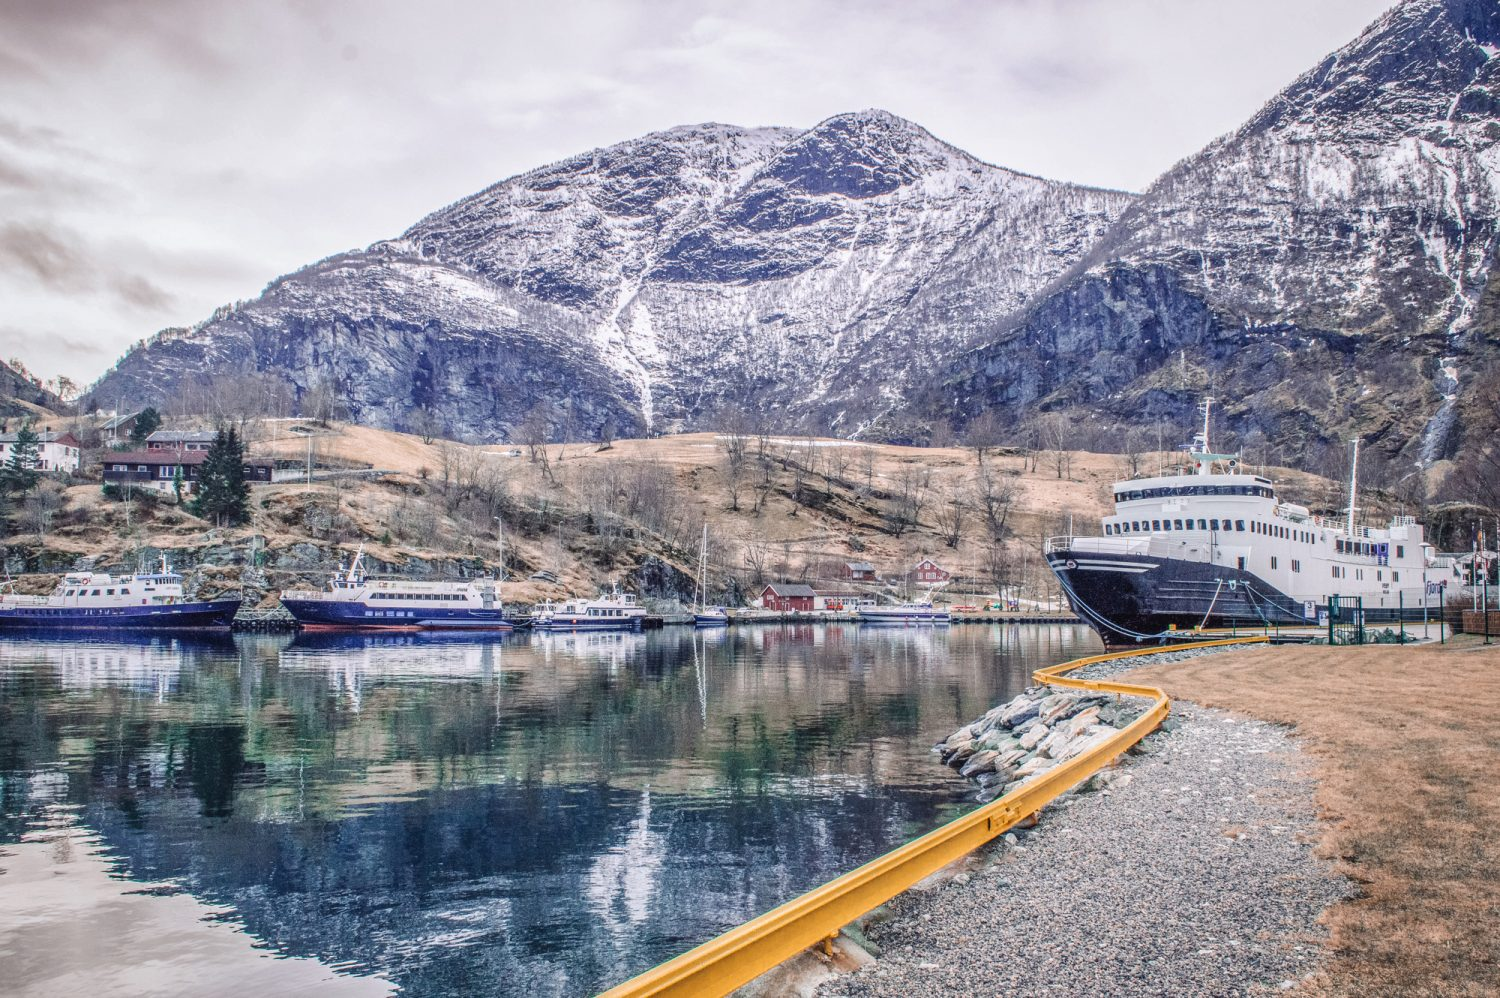 WOW absolutely stunning photos from Norway! These photos prove why Norway should be on your bucket list (and provides inspiration for where to go in Norway too). #Norway #Europe #Travel #Photography